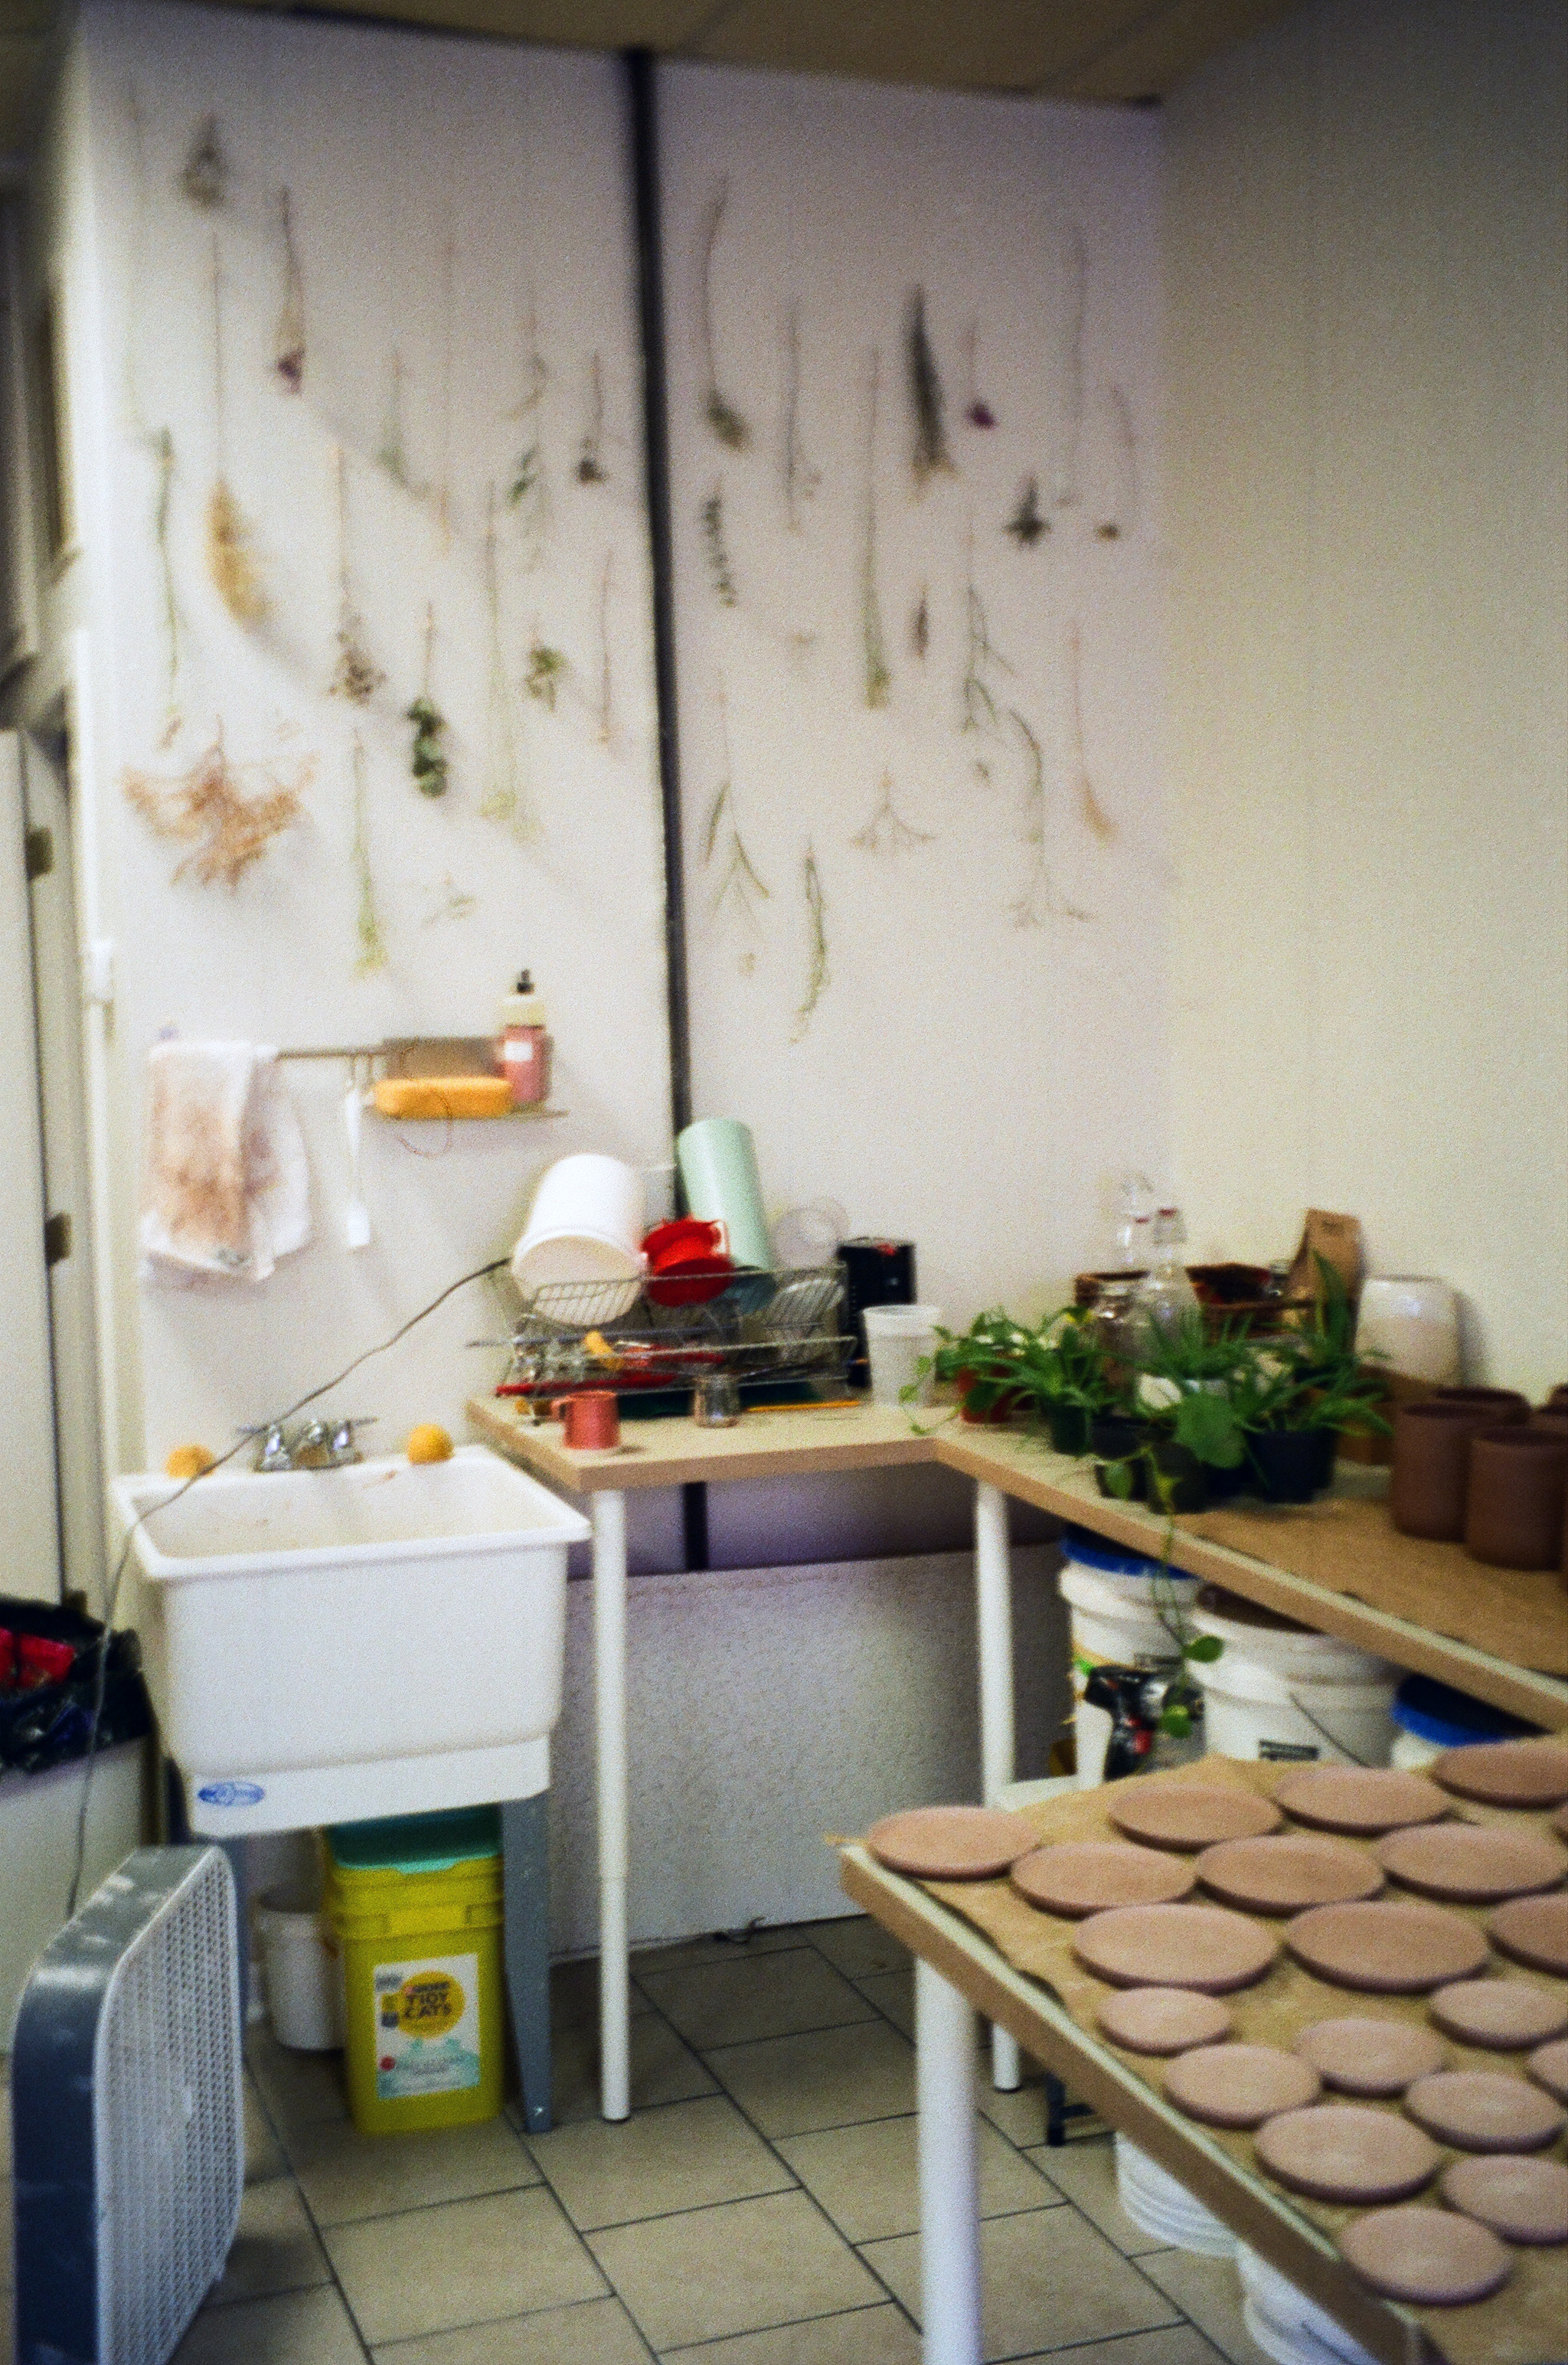 held-ceramics-studio.jpg